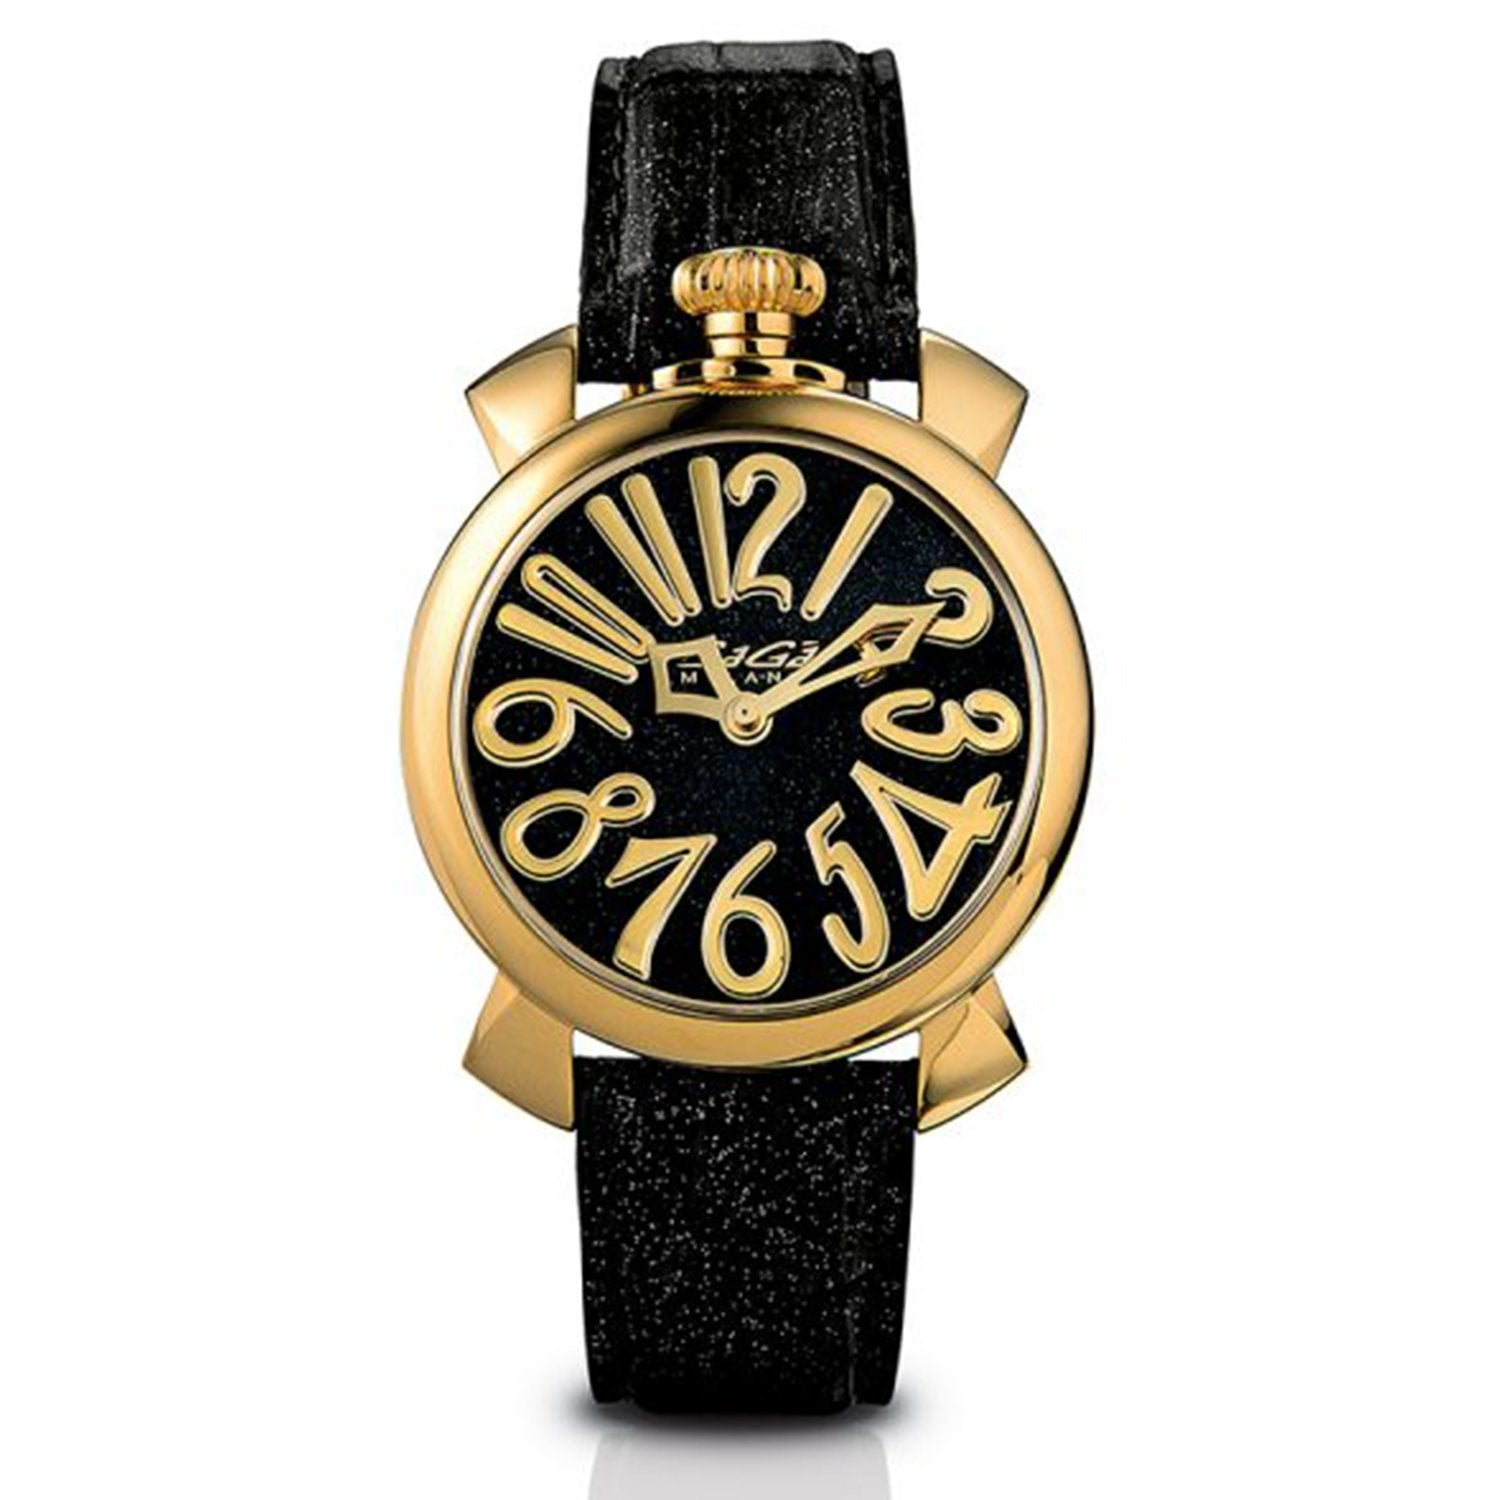 GaGà Milano Manuale 40MM Ladies Watch Black Glitter - Watches & Crystals